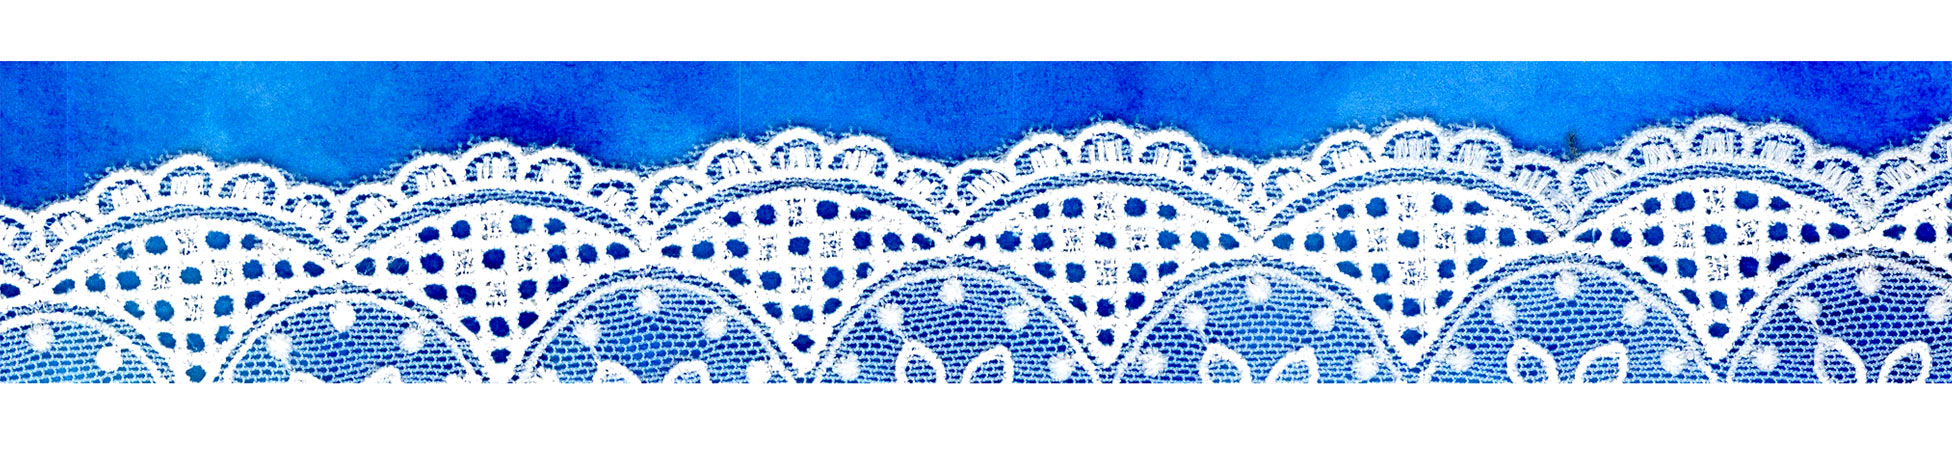 Wedding-Lace-border